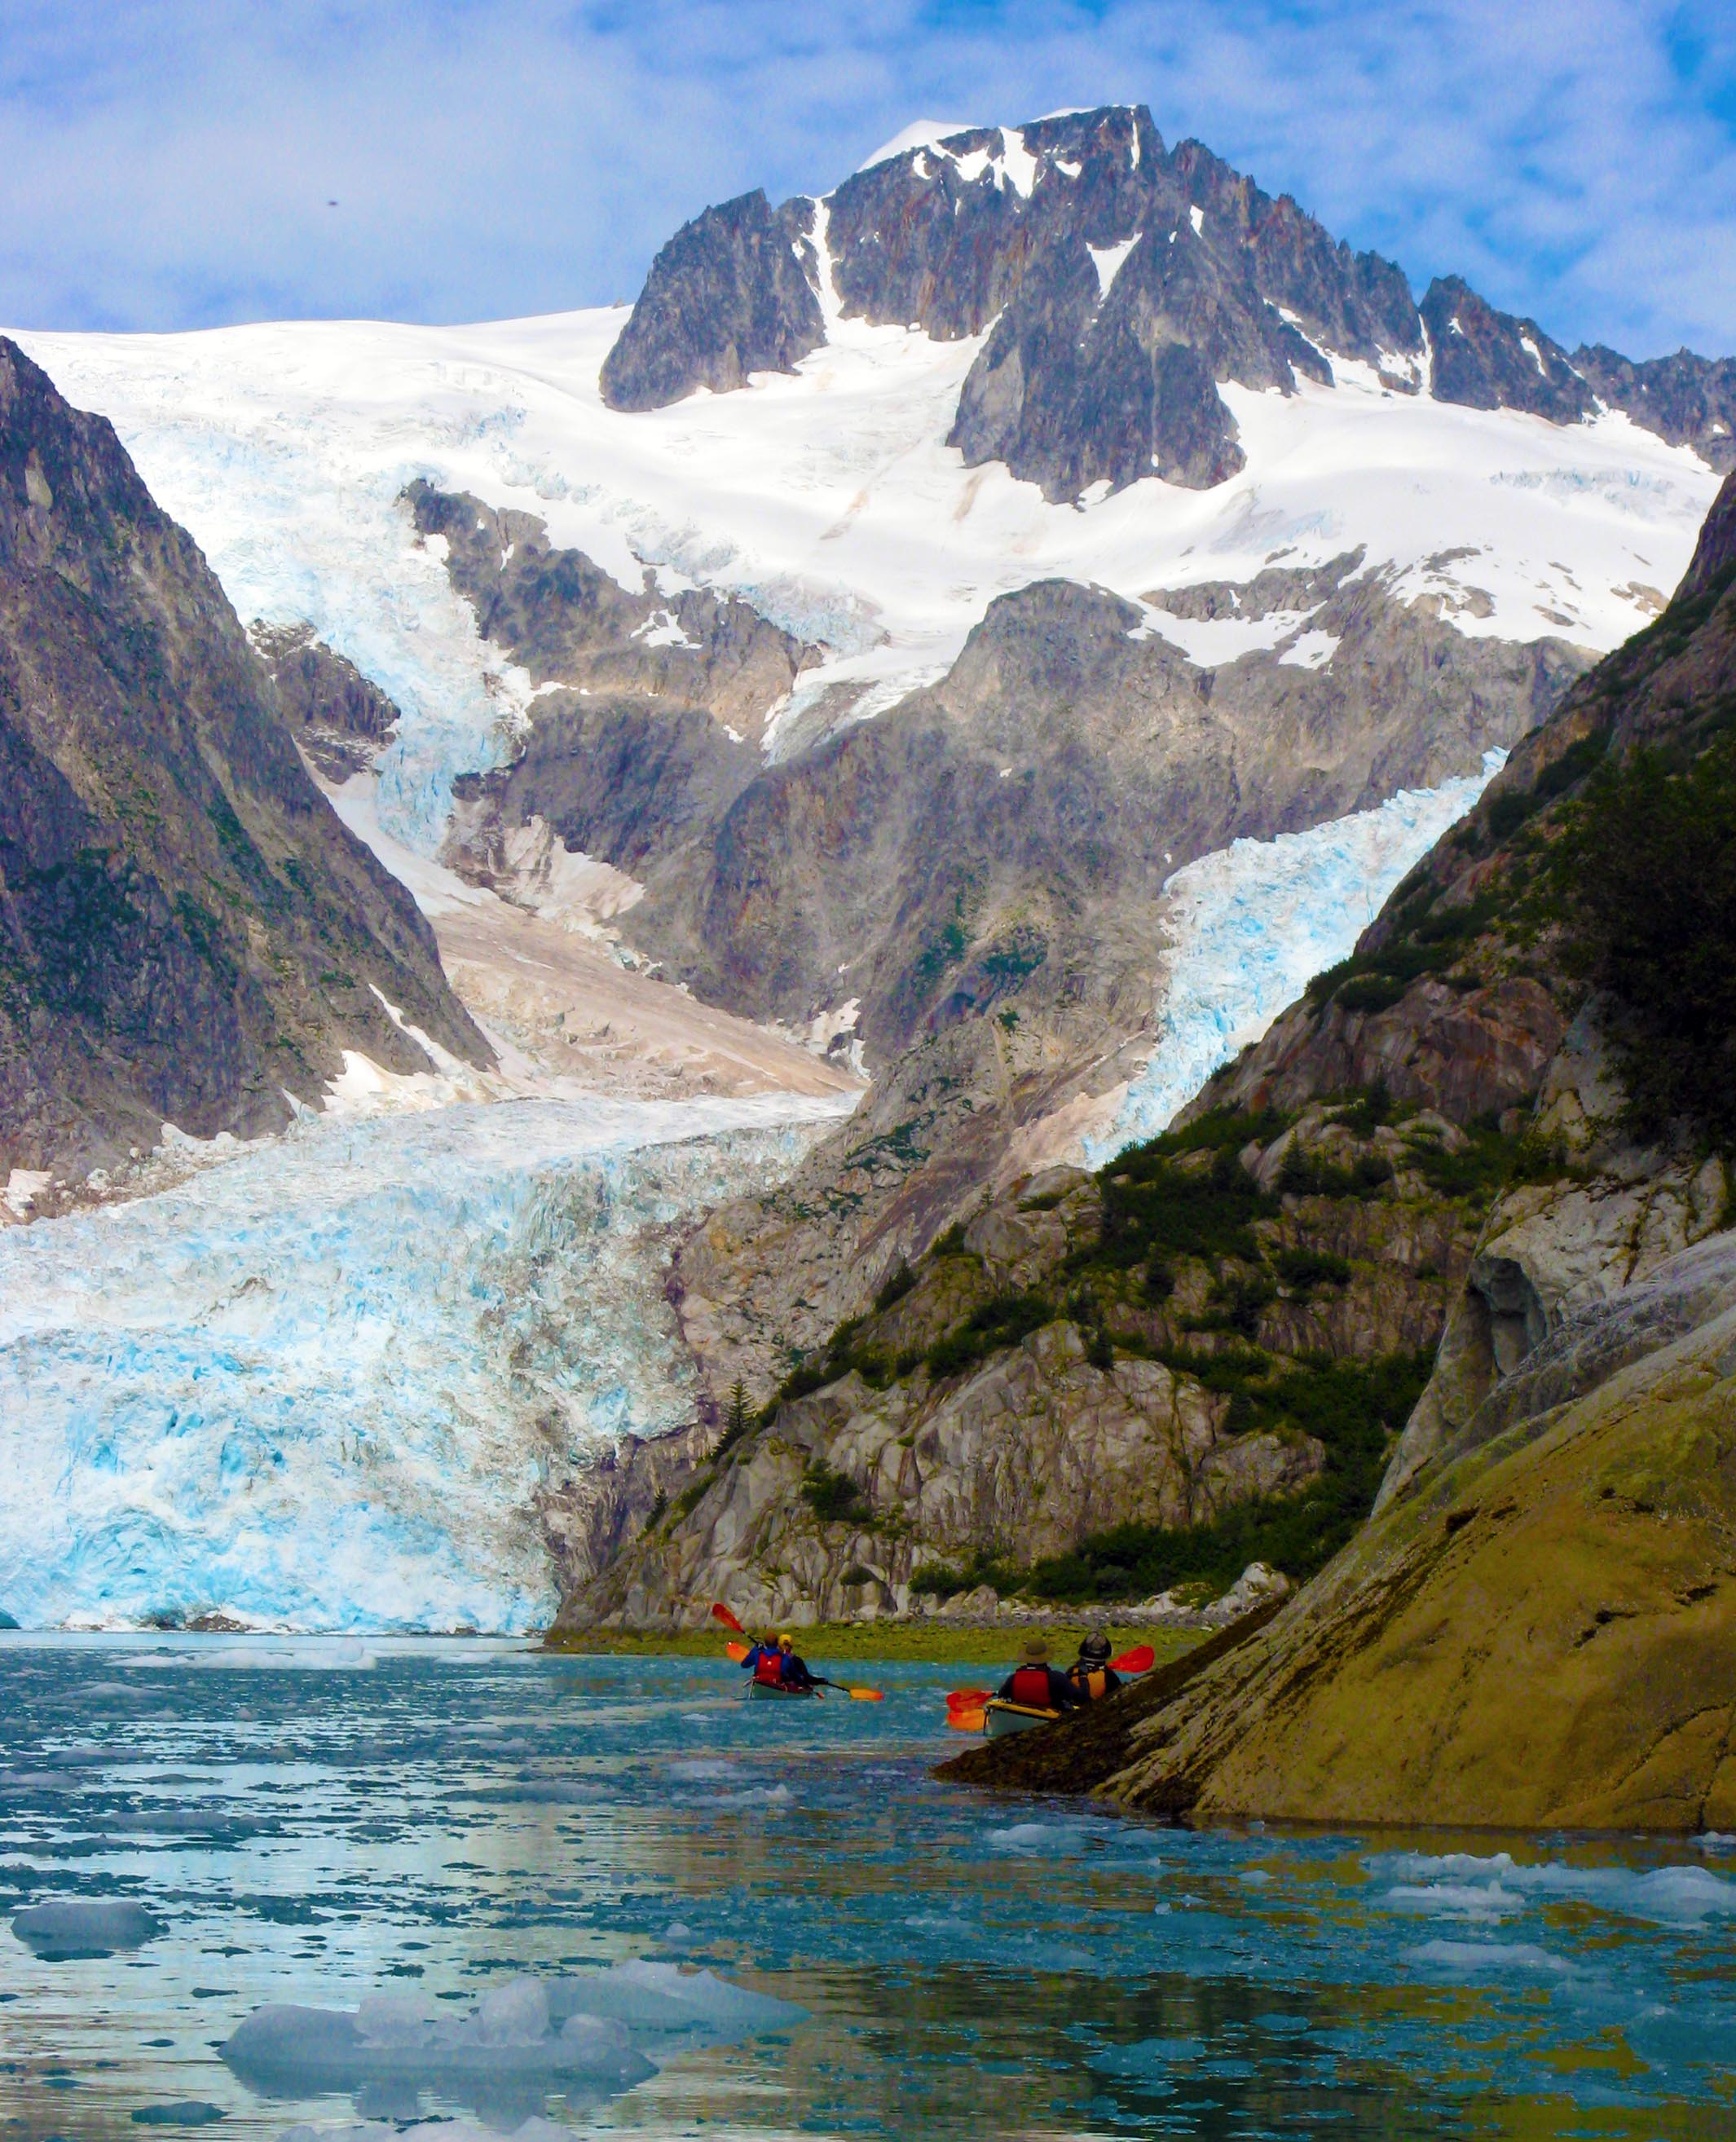 Sea Kayaking Camping Seward, Alaska Kenai Fjords National Park